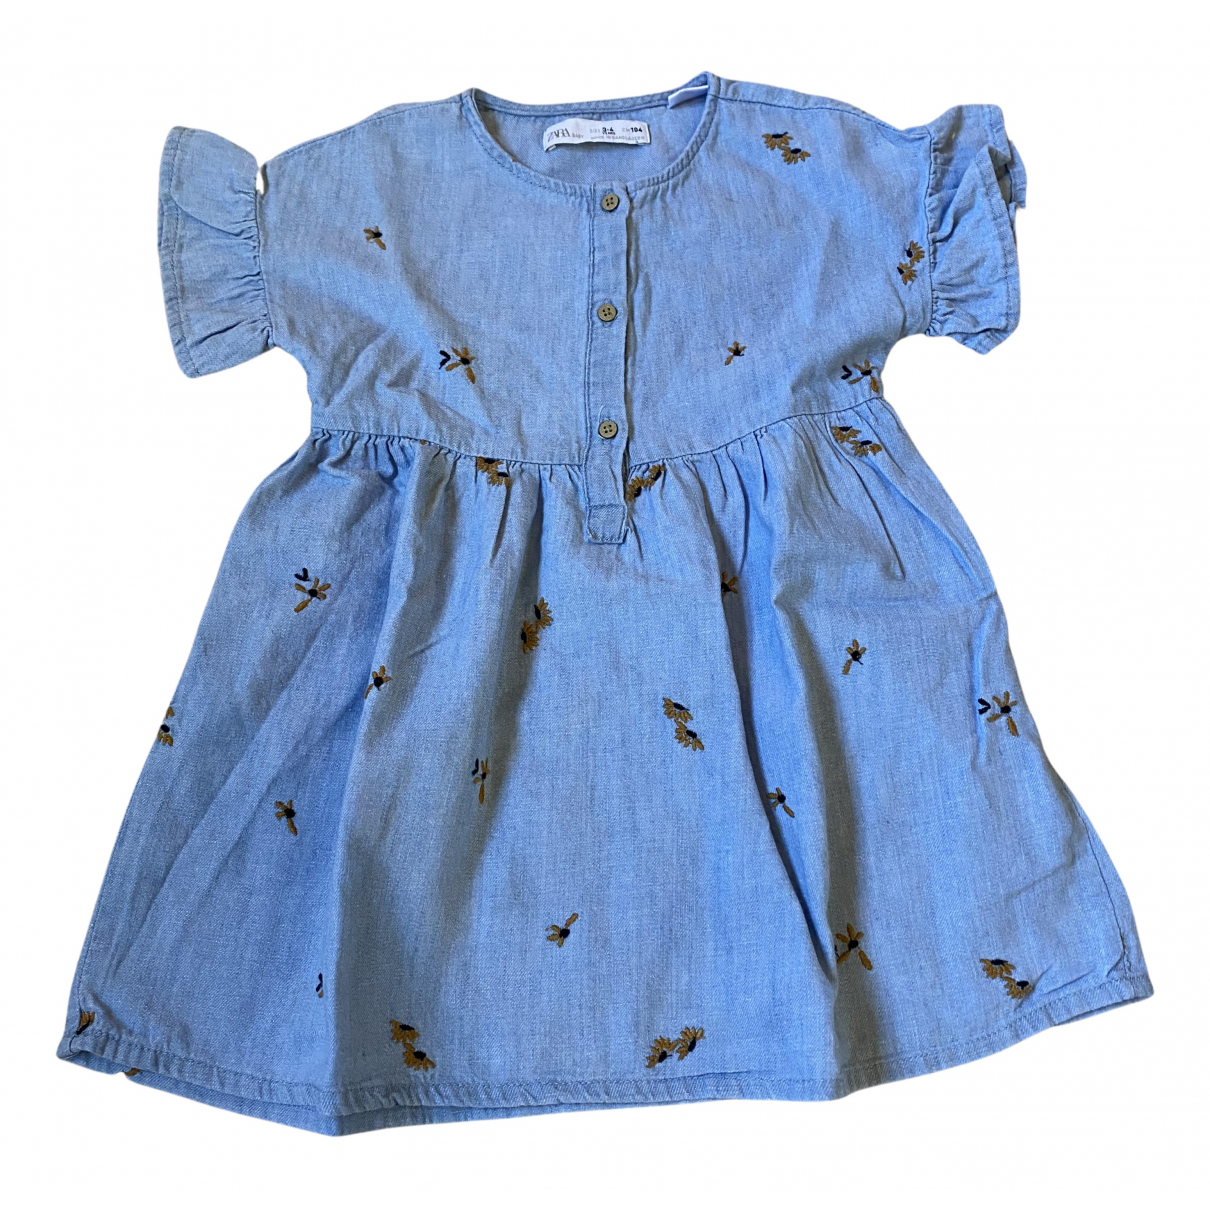 Zara N Blue Cotton dress for Kids 3 years - until 39 inches UK